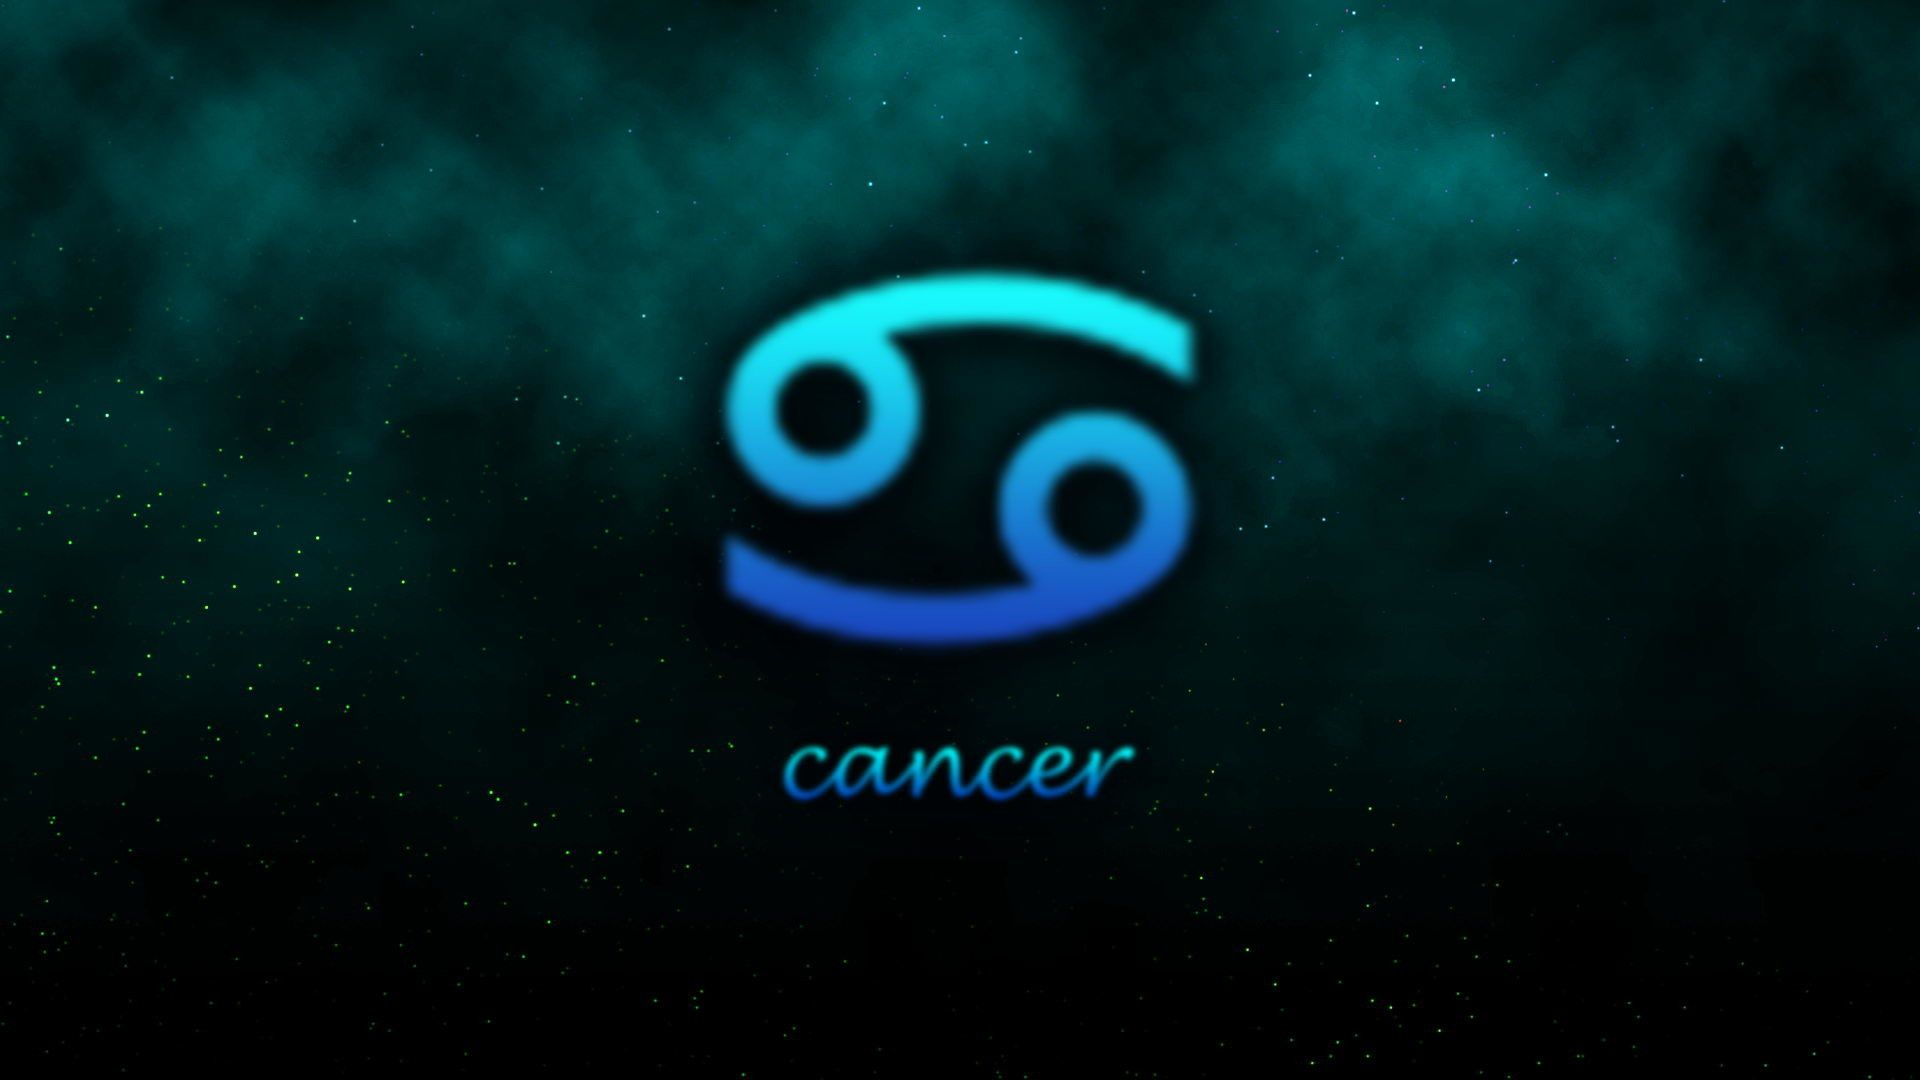 Cancer Wallpapers Top Free Cancer Backgrounds Wallpaperaccess